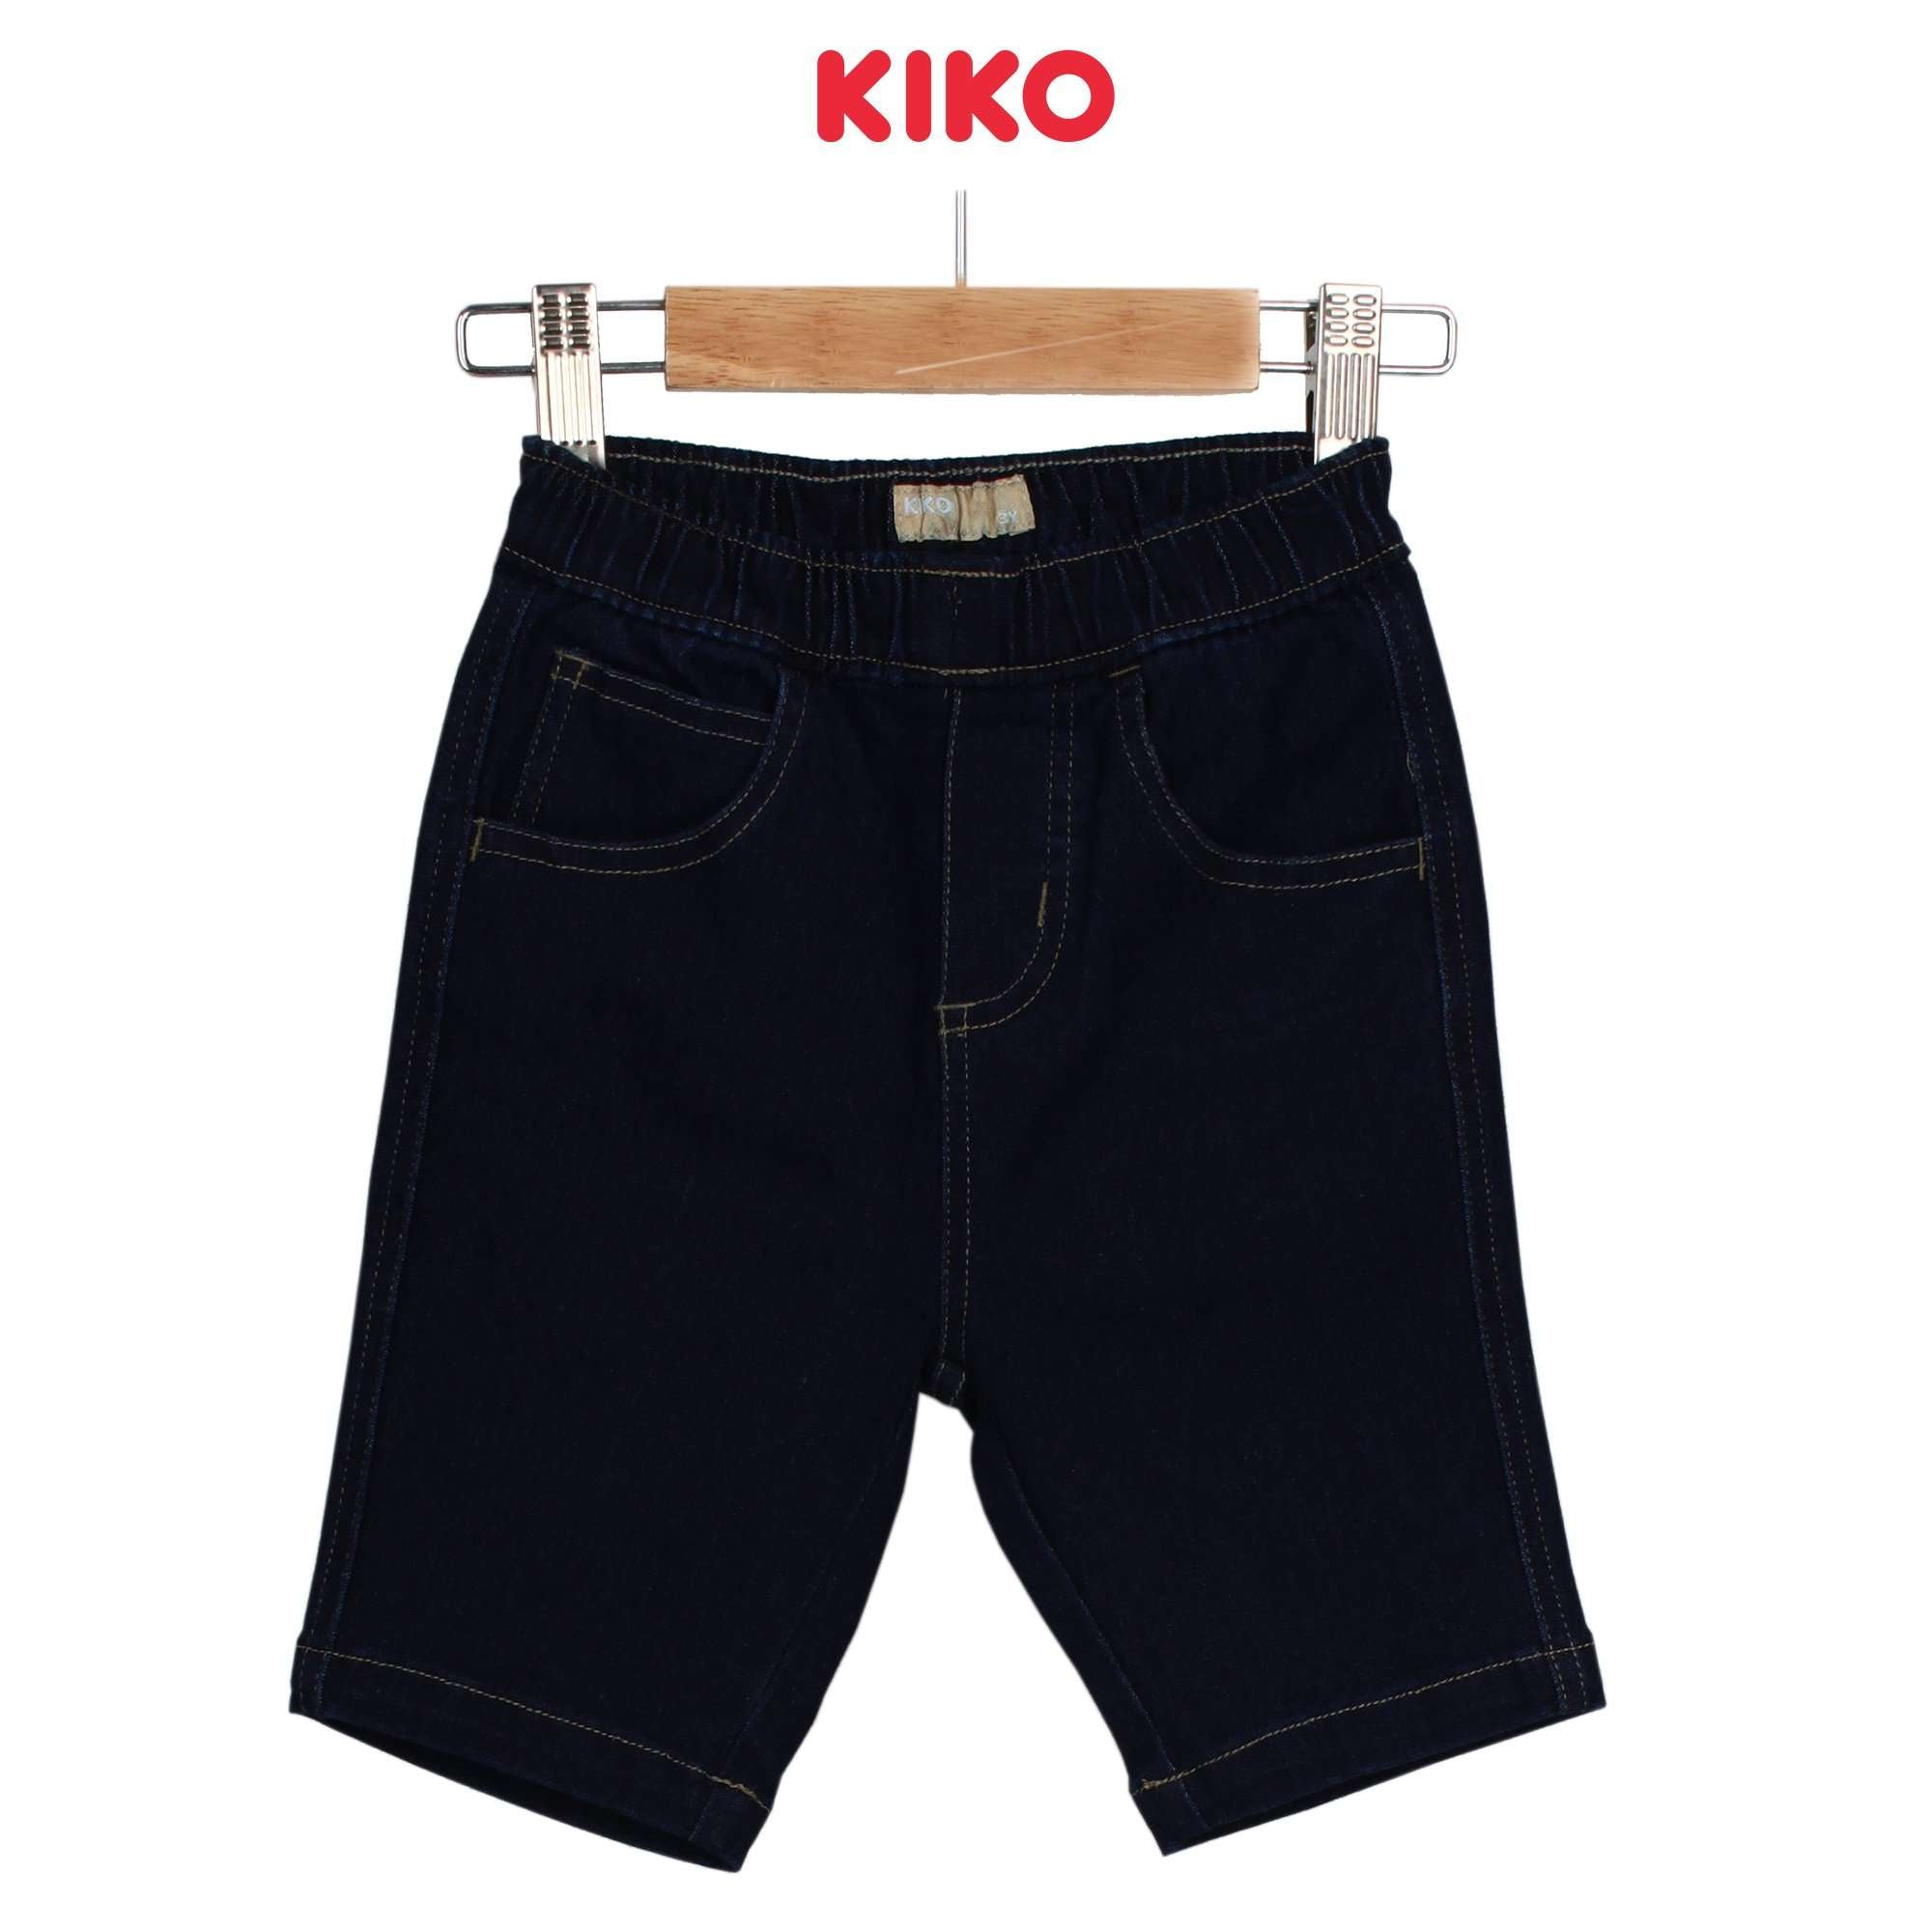 KIKO Boy Denim Bermuda - Blue 121249-202 : Buy KIKO online at CMG.MY